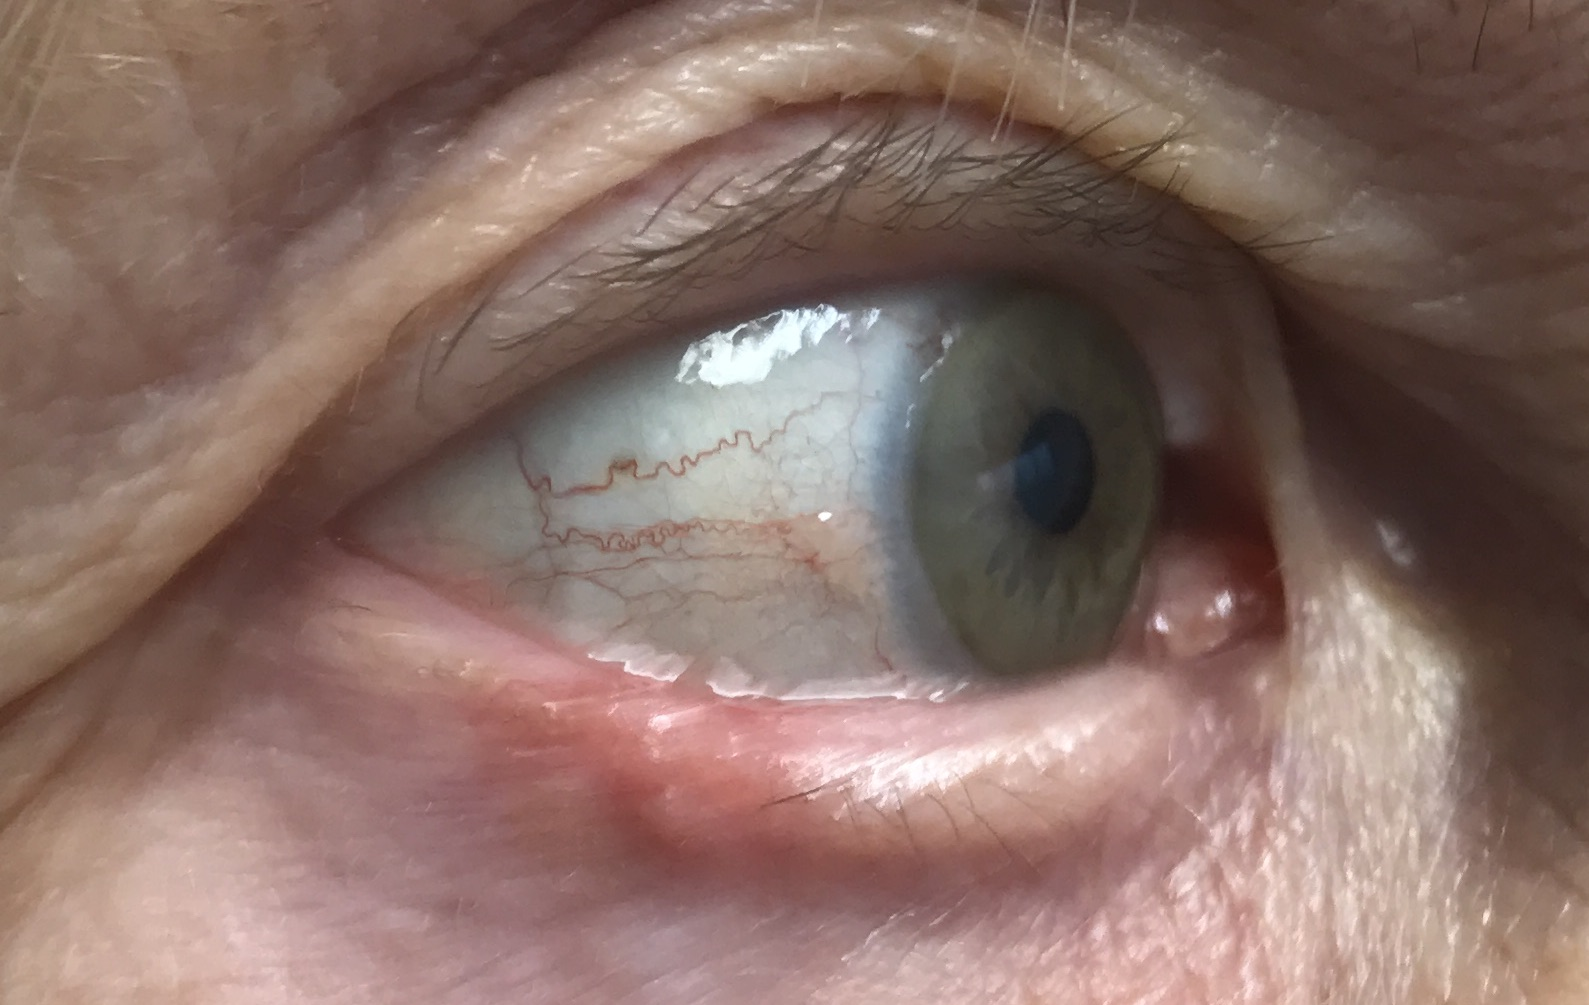 LOWER EYELID BASAL CELL CARCINOMA (BCC)